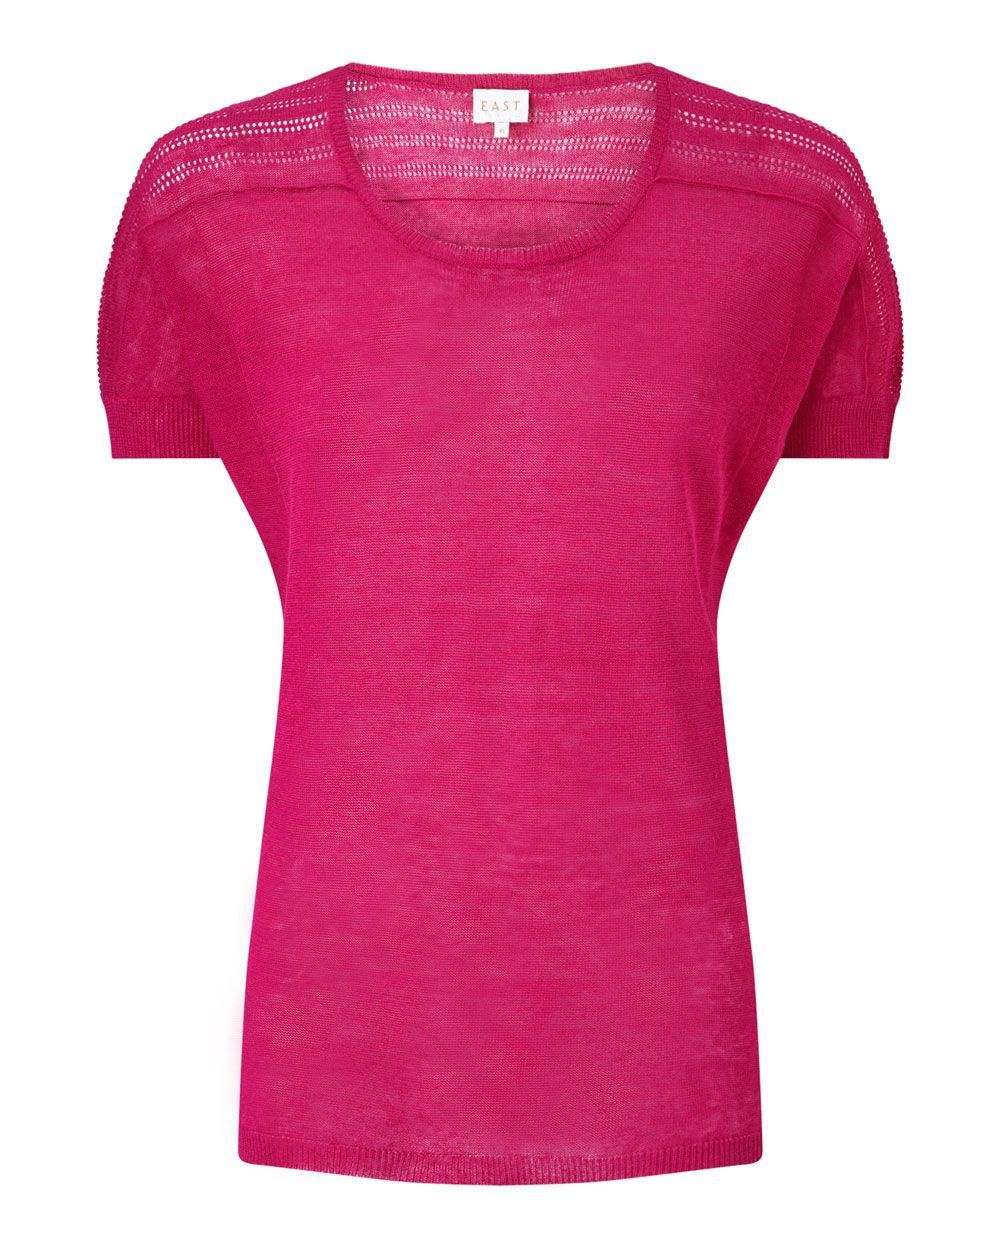 Pointelle Detail Top, Pink - neckline: round neck; pattern: plain; style: t-shirt; predominant colour: hot pink; occasions: casual, creative work; length: standard; fibres: linen - 100%; fit: body skimming; sleeve length: short sleeve; sleeve style: standard; pattern type: fabric; texture group: jersey - stretchy/drapey; season: s/s 2016; wardrobe: highlight